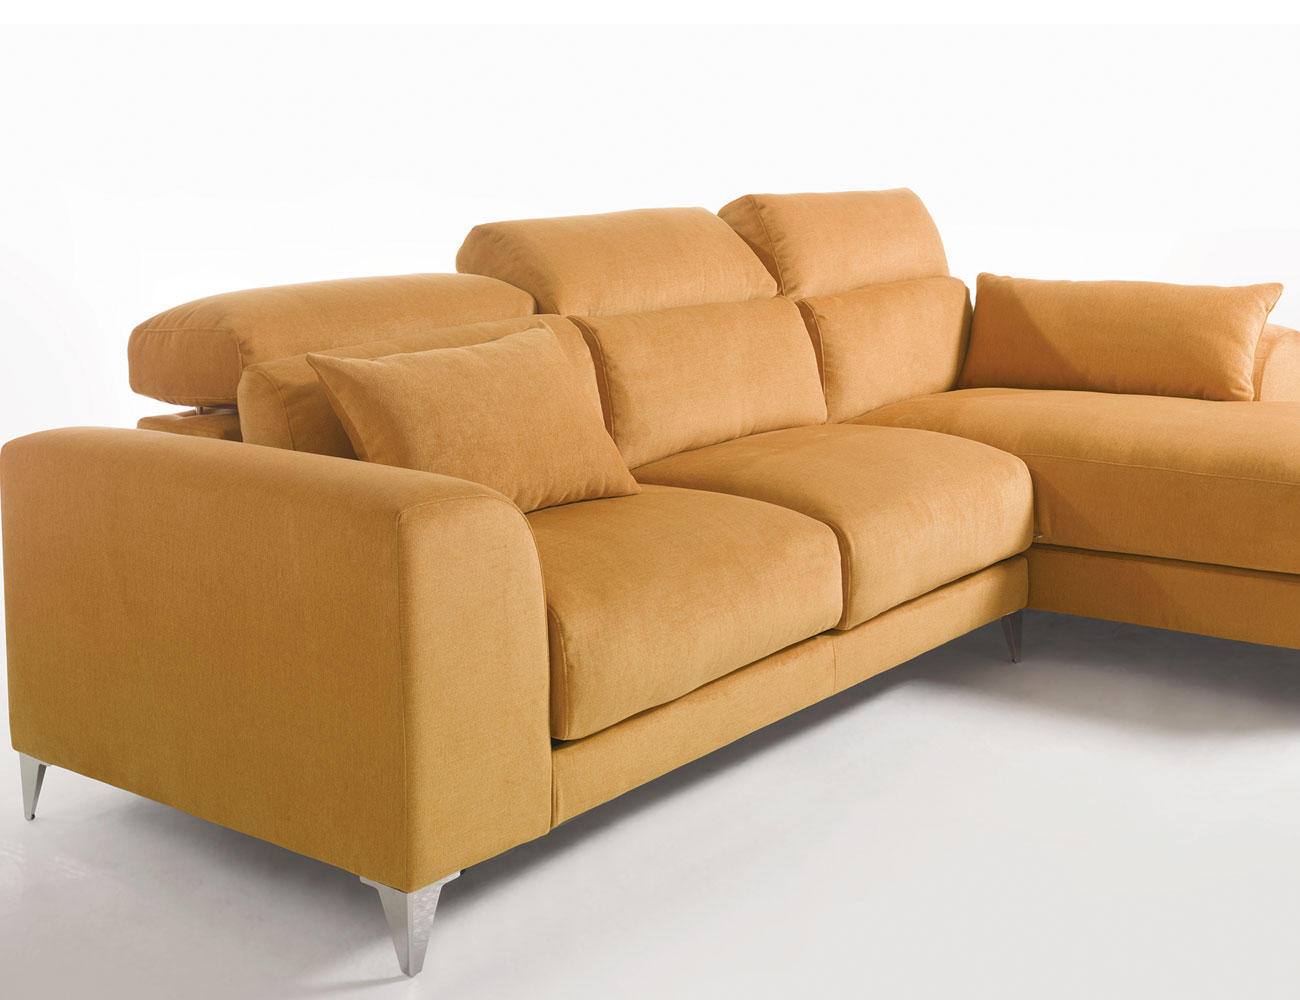 Sofa chaiselongue gran lujo decorativo patas altas amarillo 247